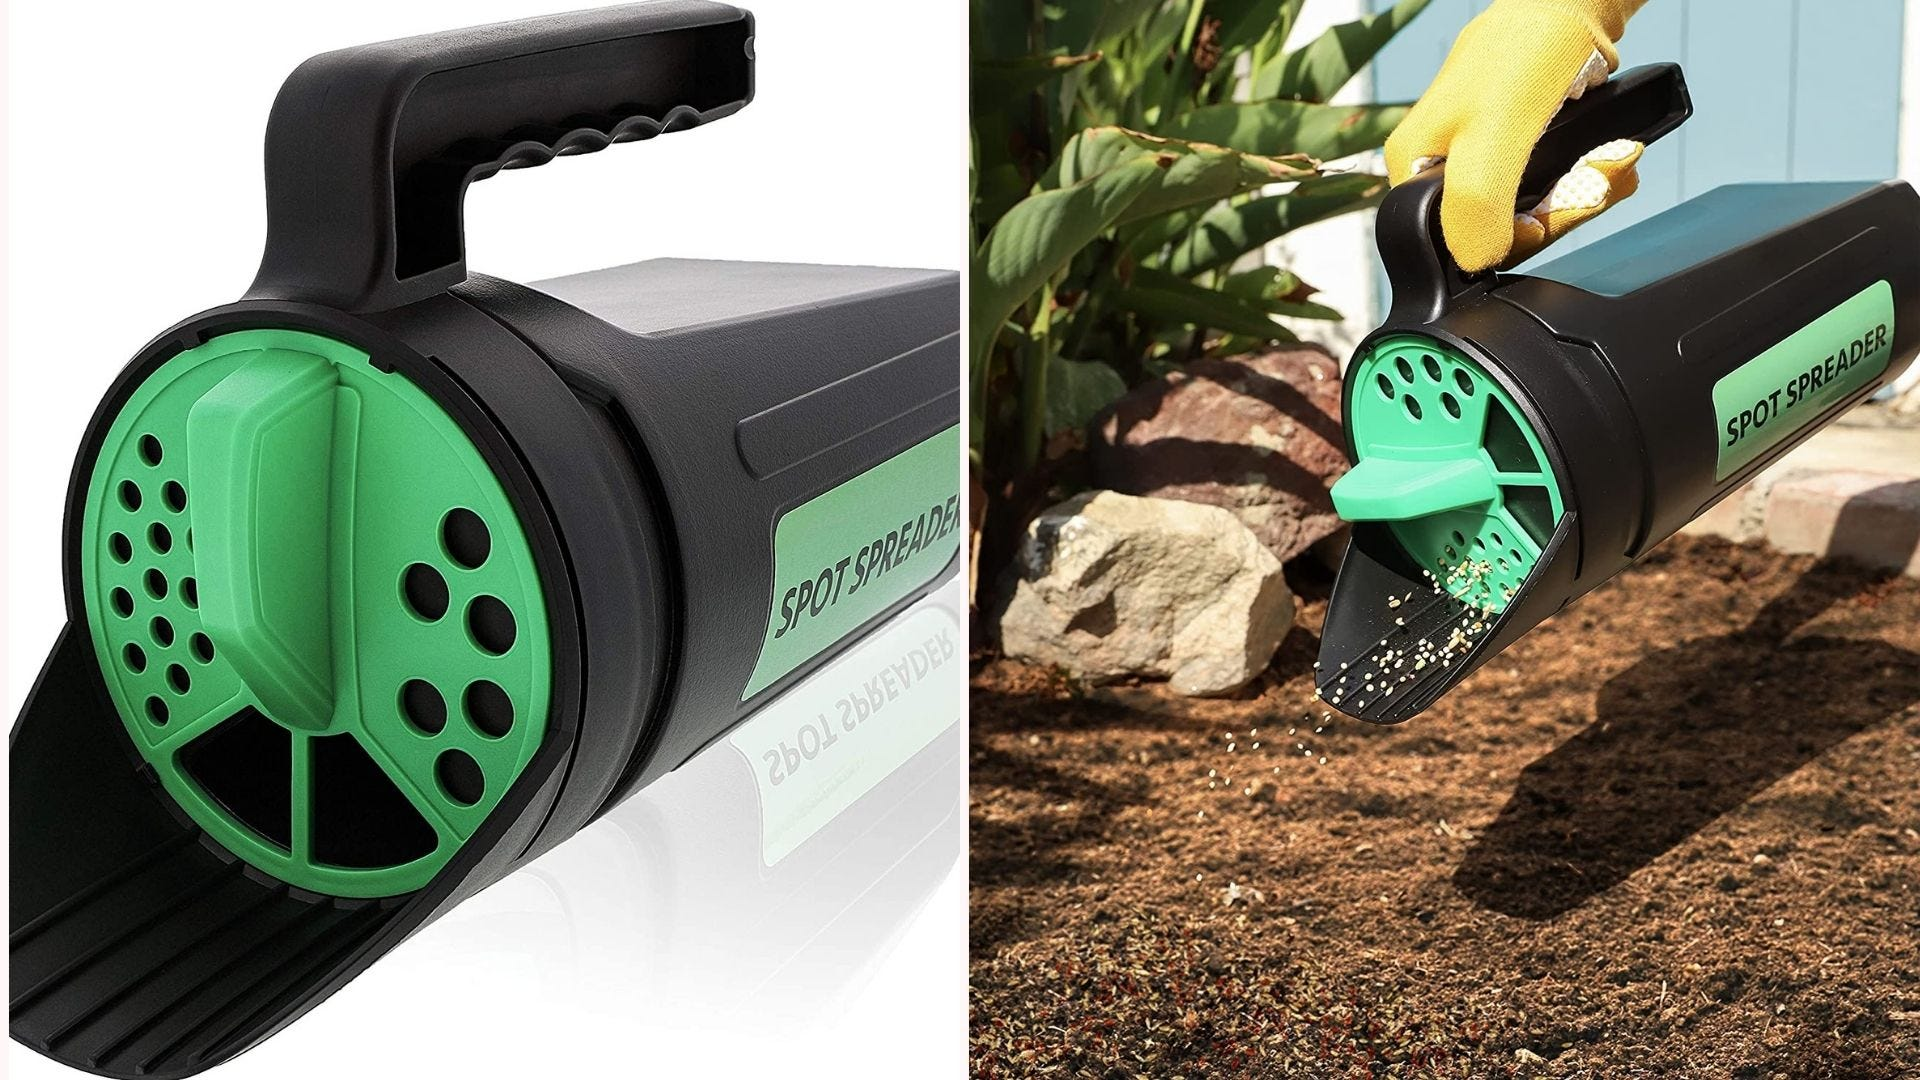 a handheld green and black seed spreader